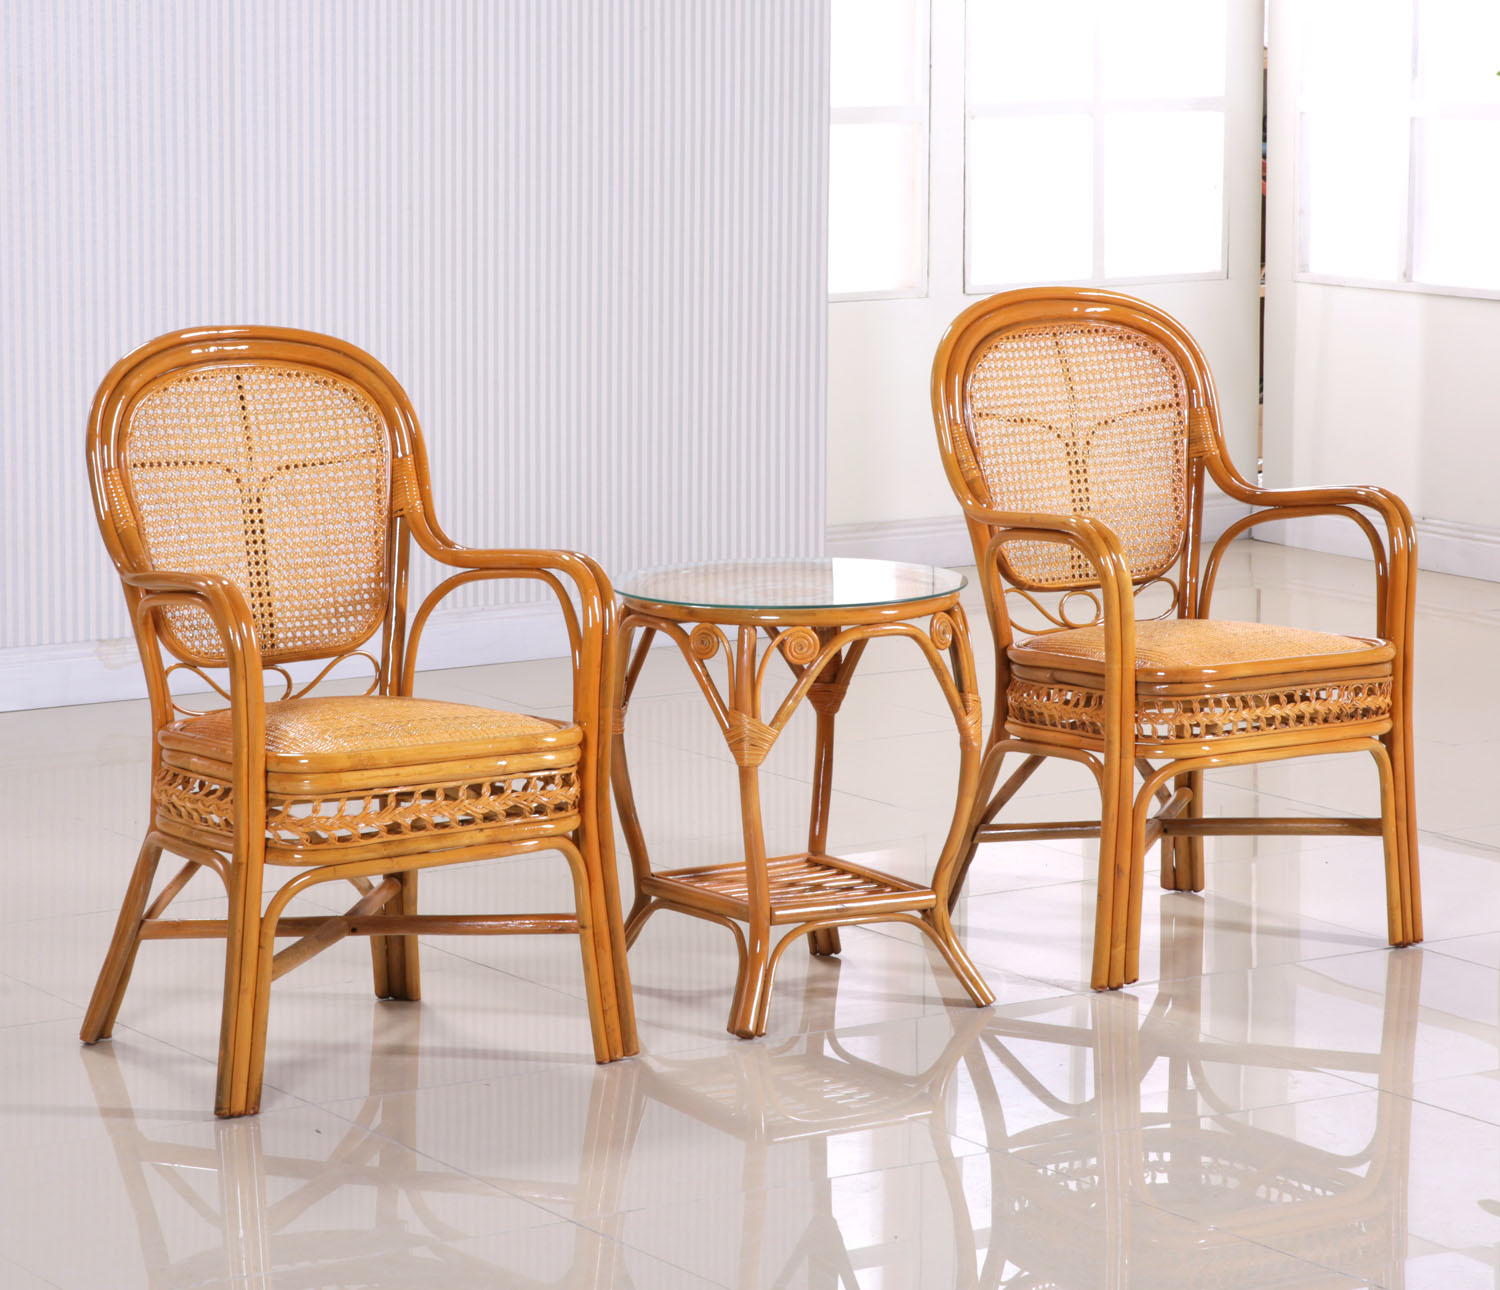 Rattan chair rattan chairs coffee table three sets of glass in the distribution of natural indonesian rattan upscale three sets